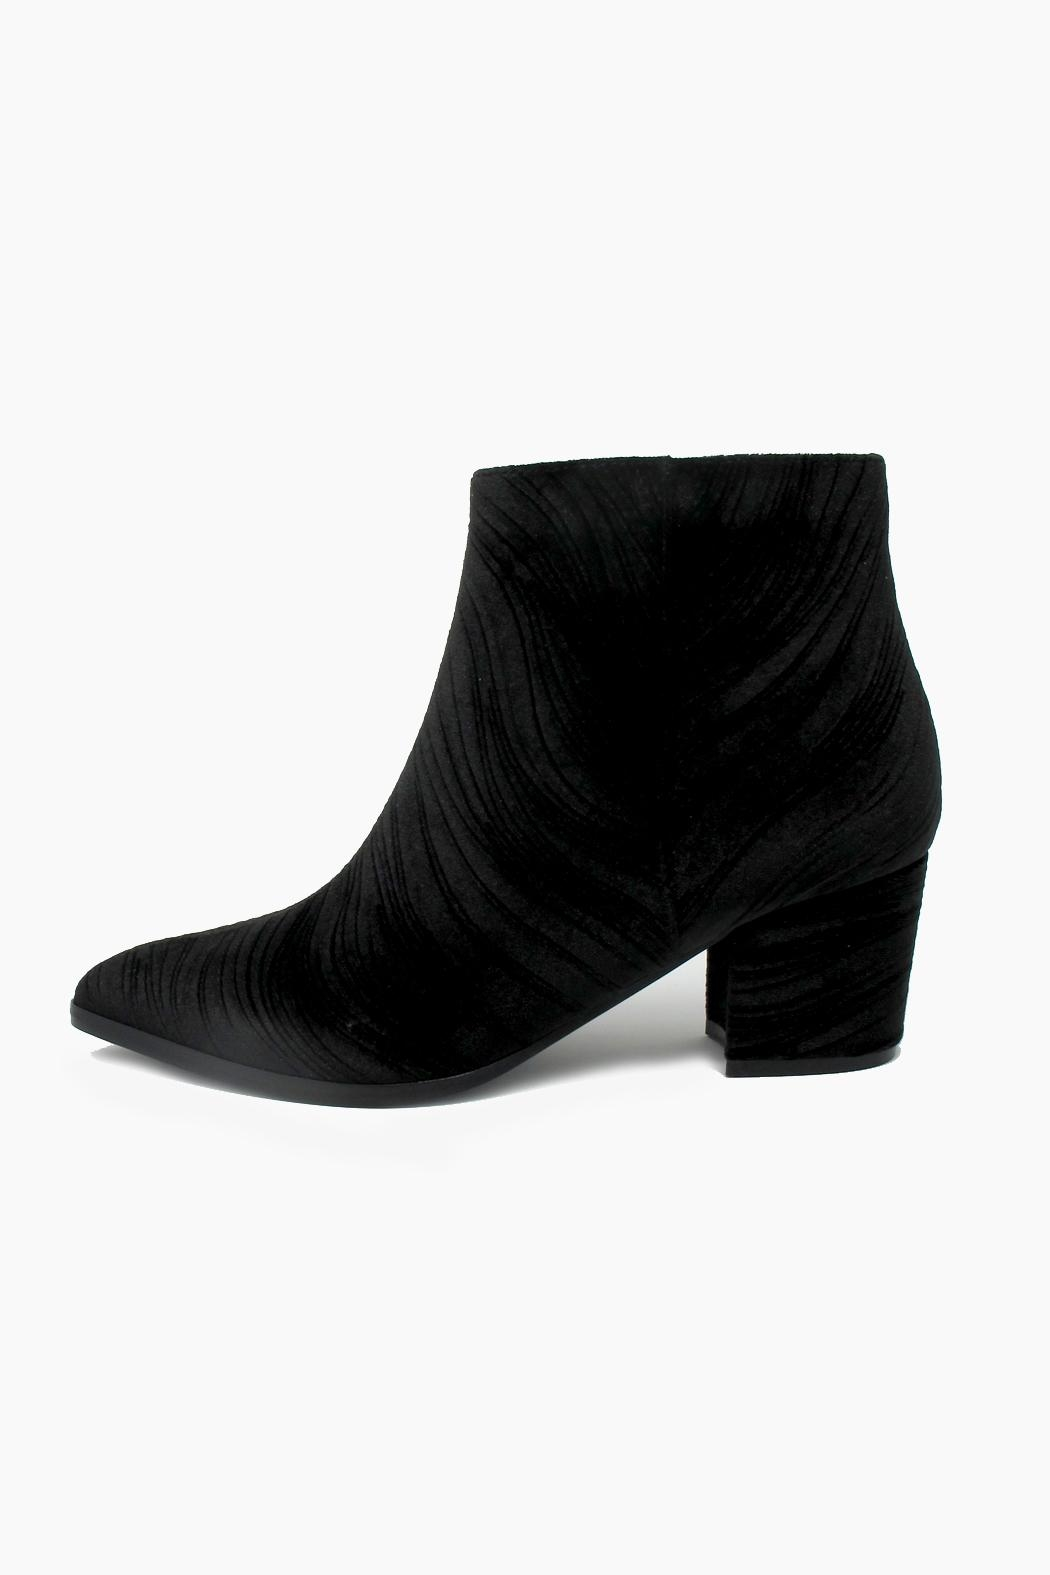 fbc4aef131 Vaneli Velvet Textured Booties from South Carolina by Baehr Feet ...